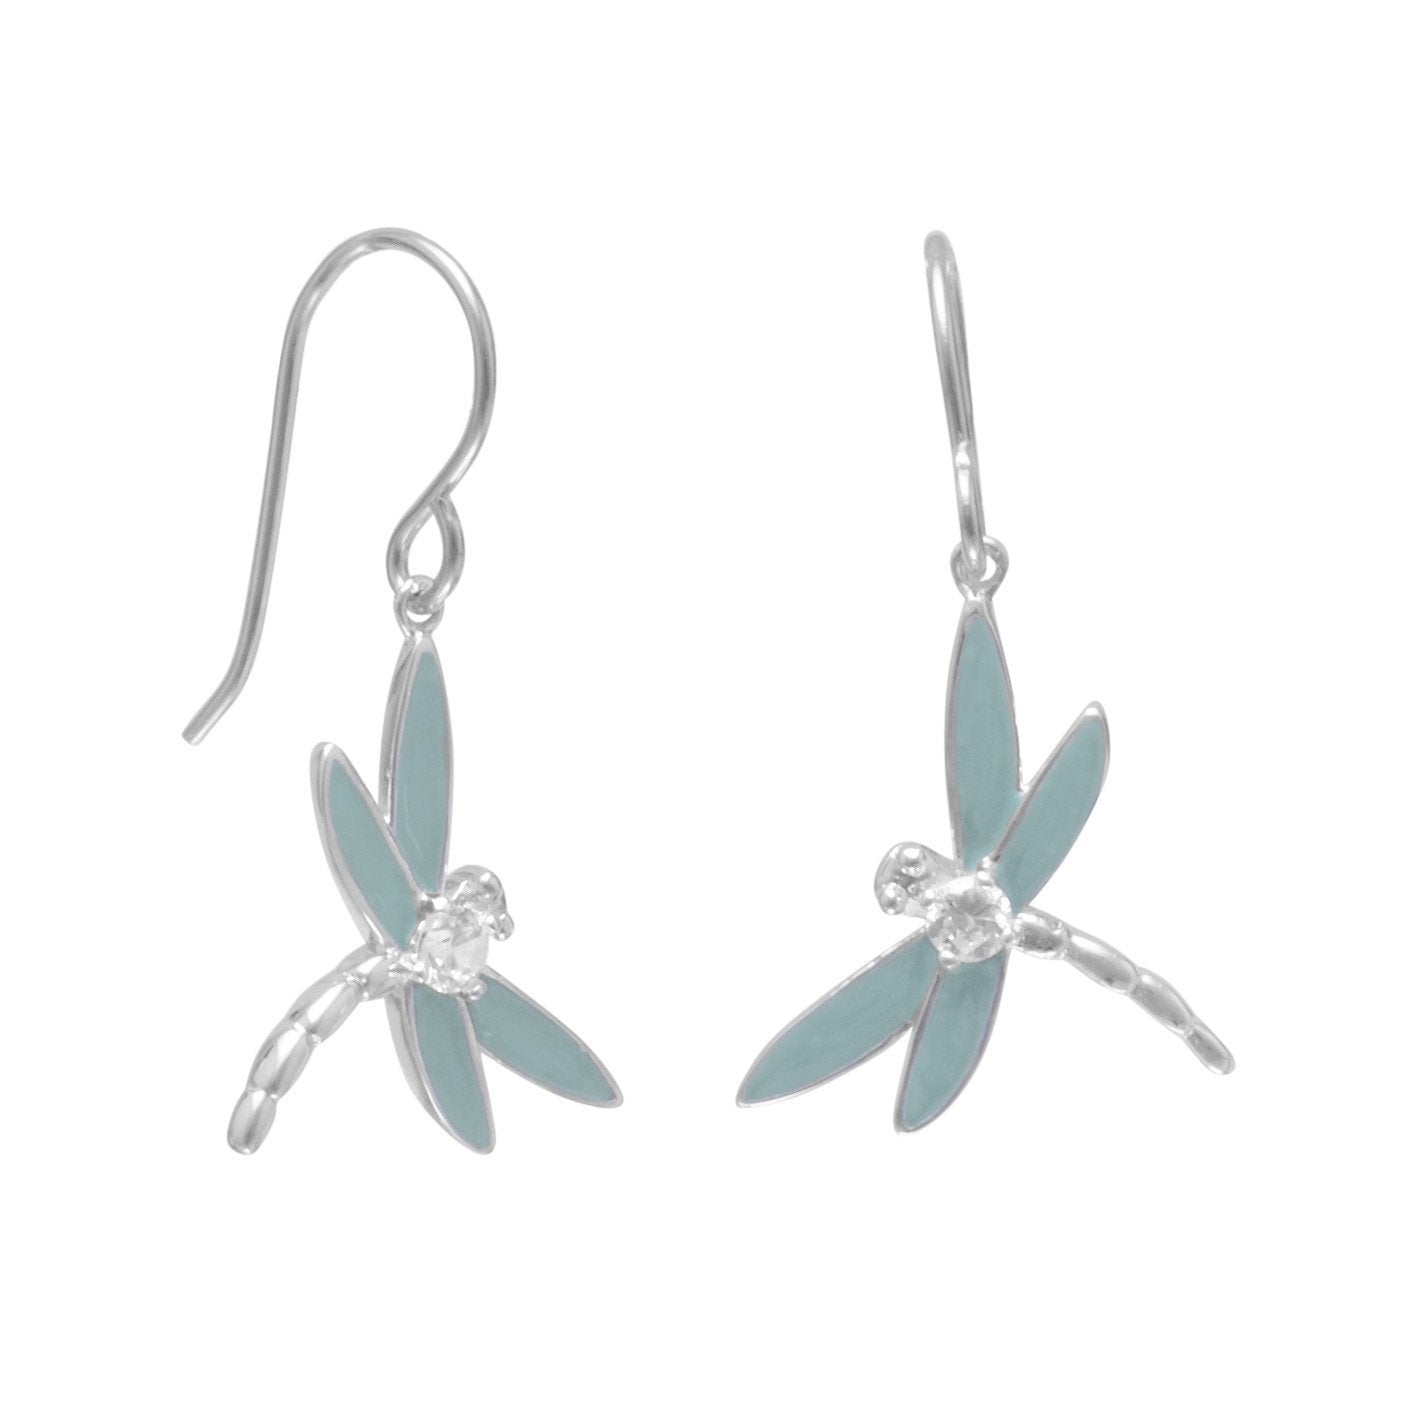 Enamel and CZ Dragonfly Earrings - Rocky Mt. Outlet Inc - Shop & Save 24/7